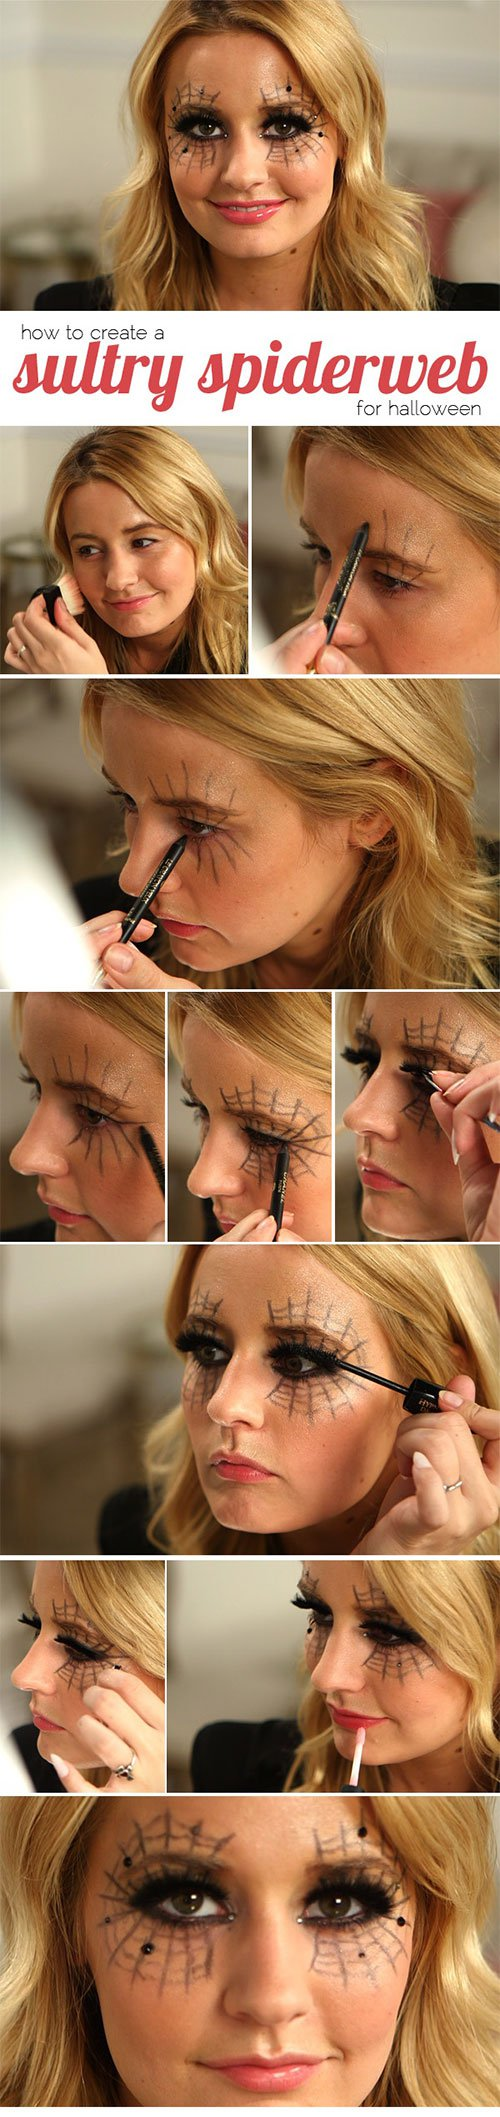 Halloween Spiderweb Makeup Tutorial